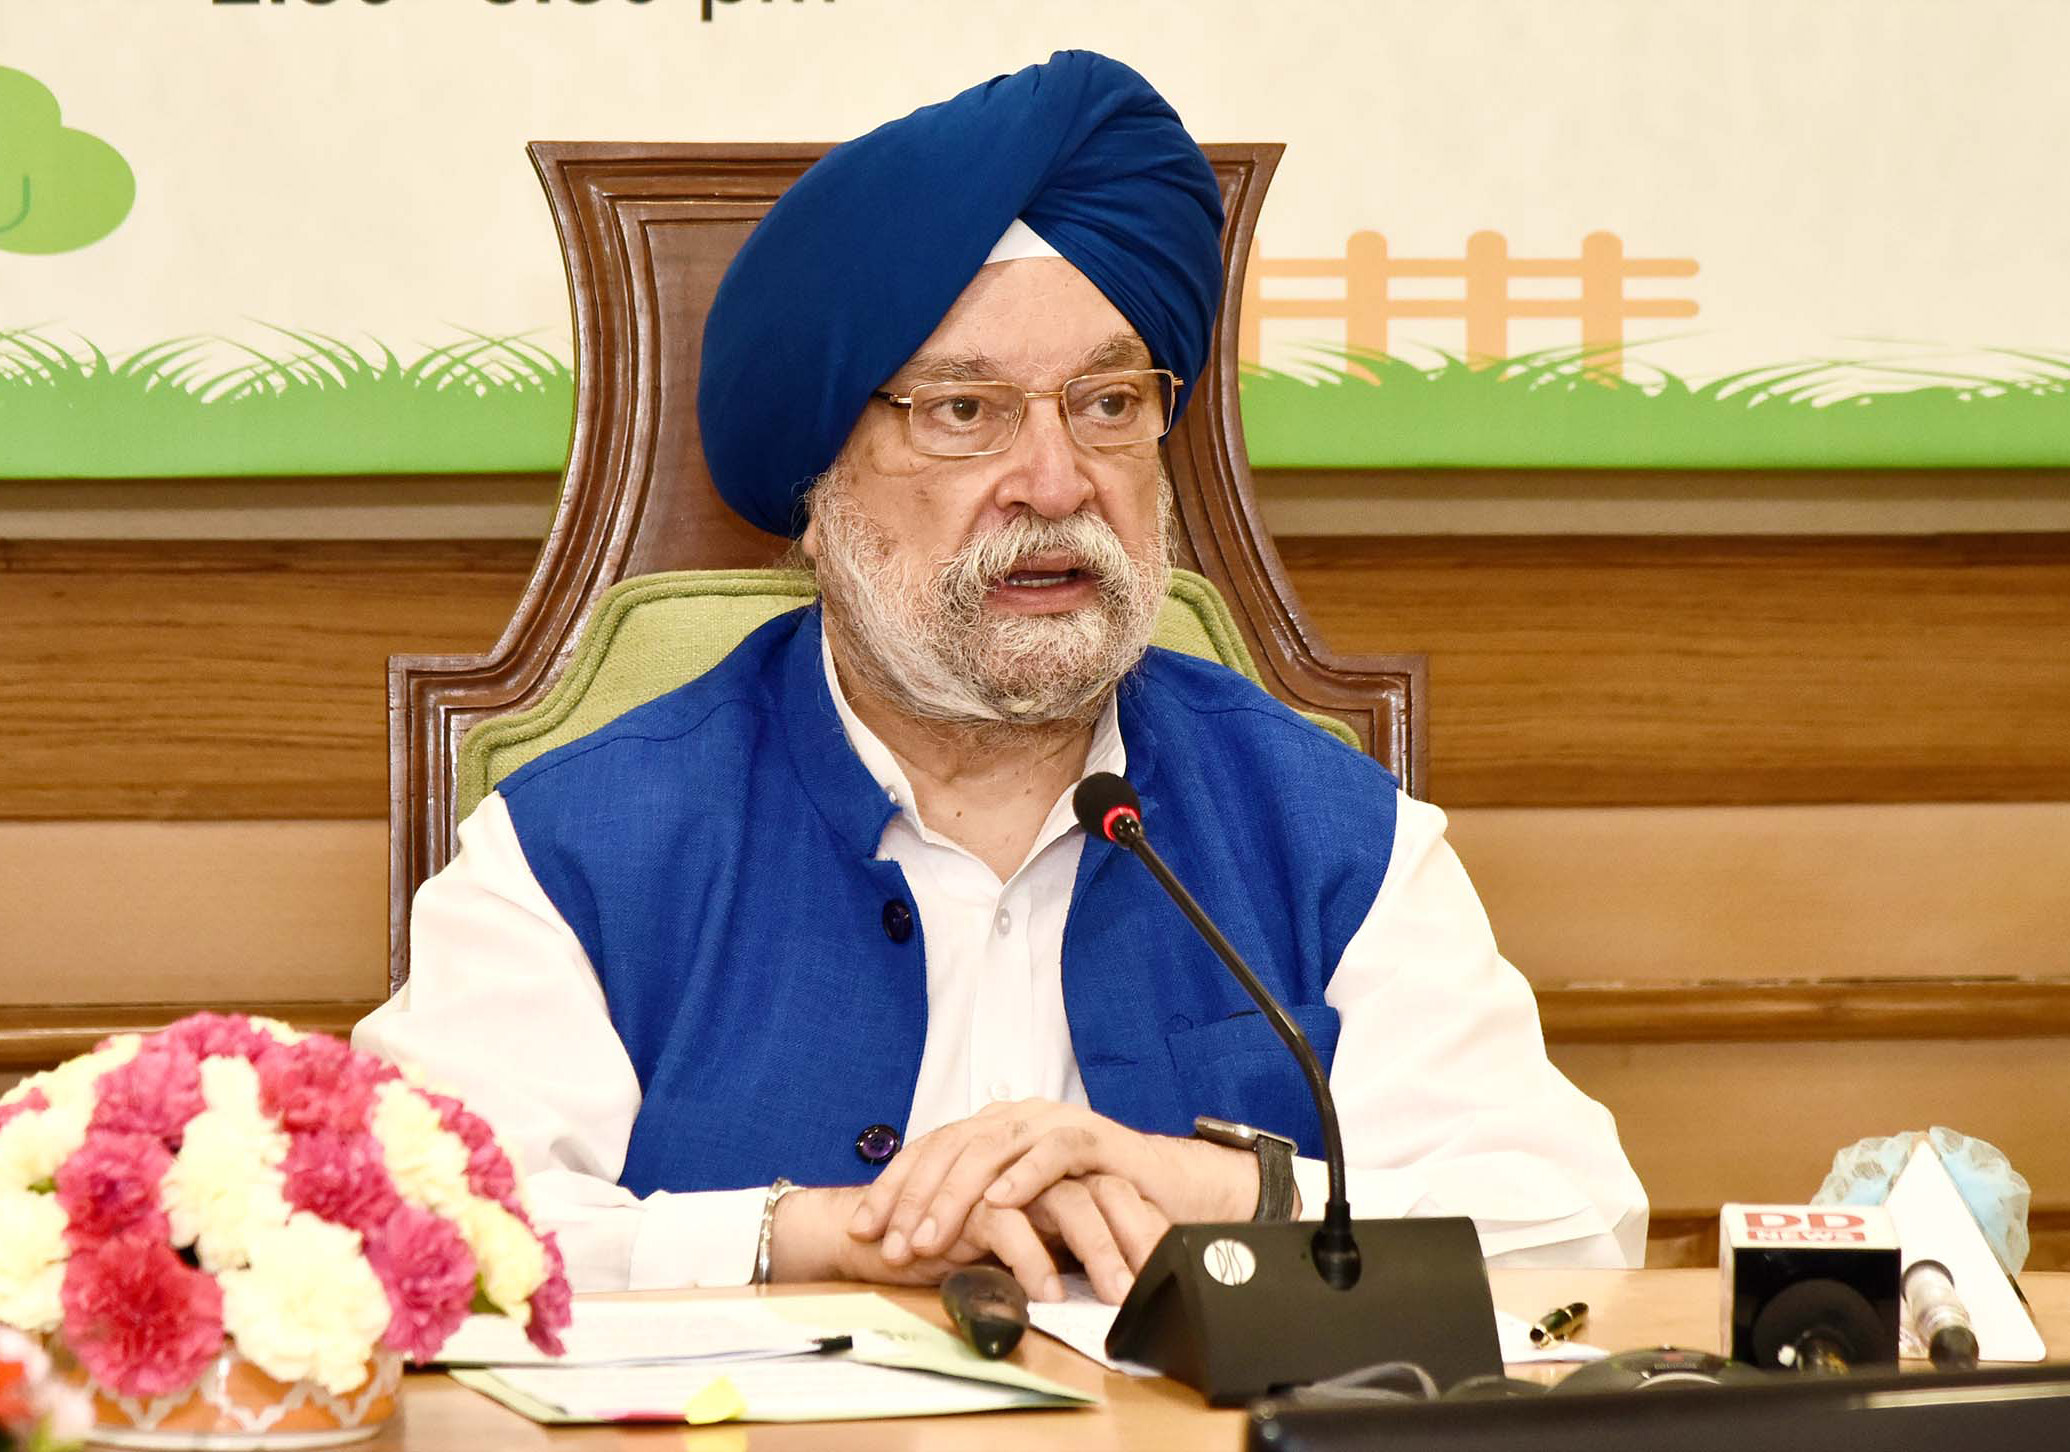 Coronavirus India: Hardeep Singh Puri ruled out calculation of several airline companies which stated normalcy in aviation sector will return in 2023.